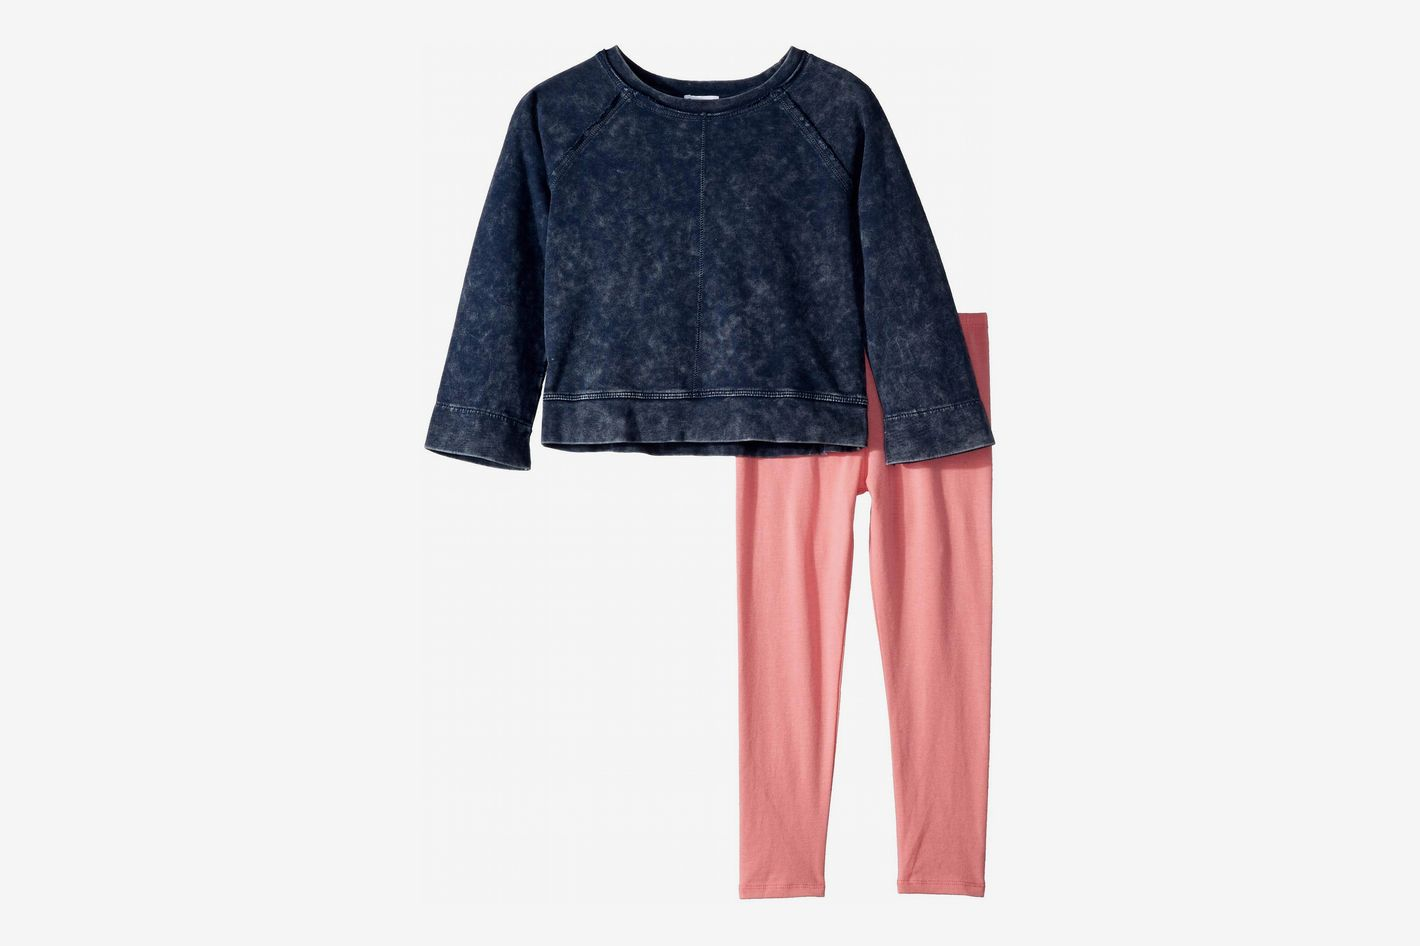 Splendid Littles Baby French Terry Mineral Wash Top Set